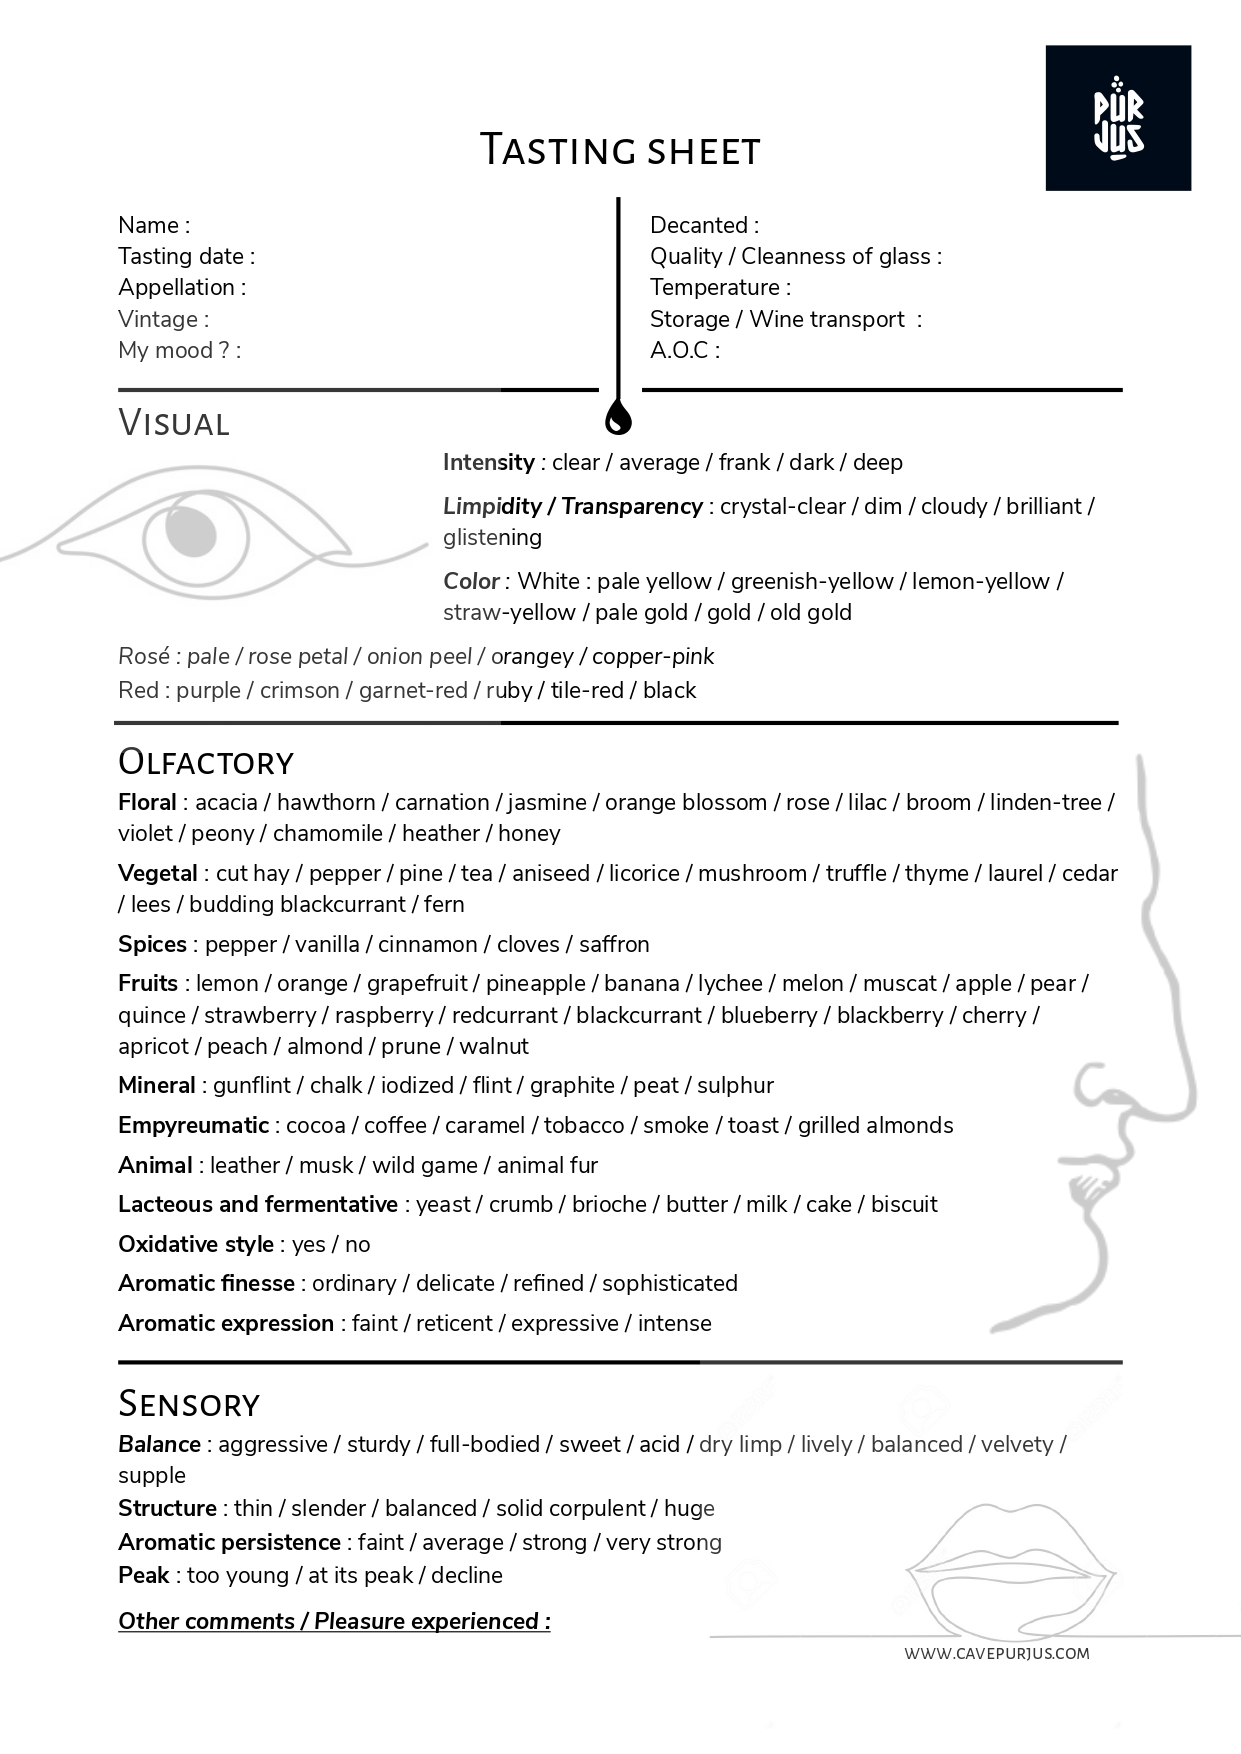 Download the tasting sheet